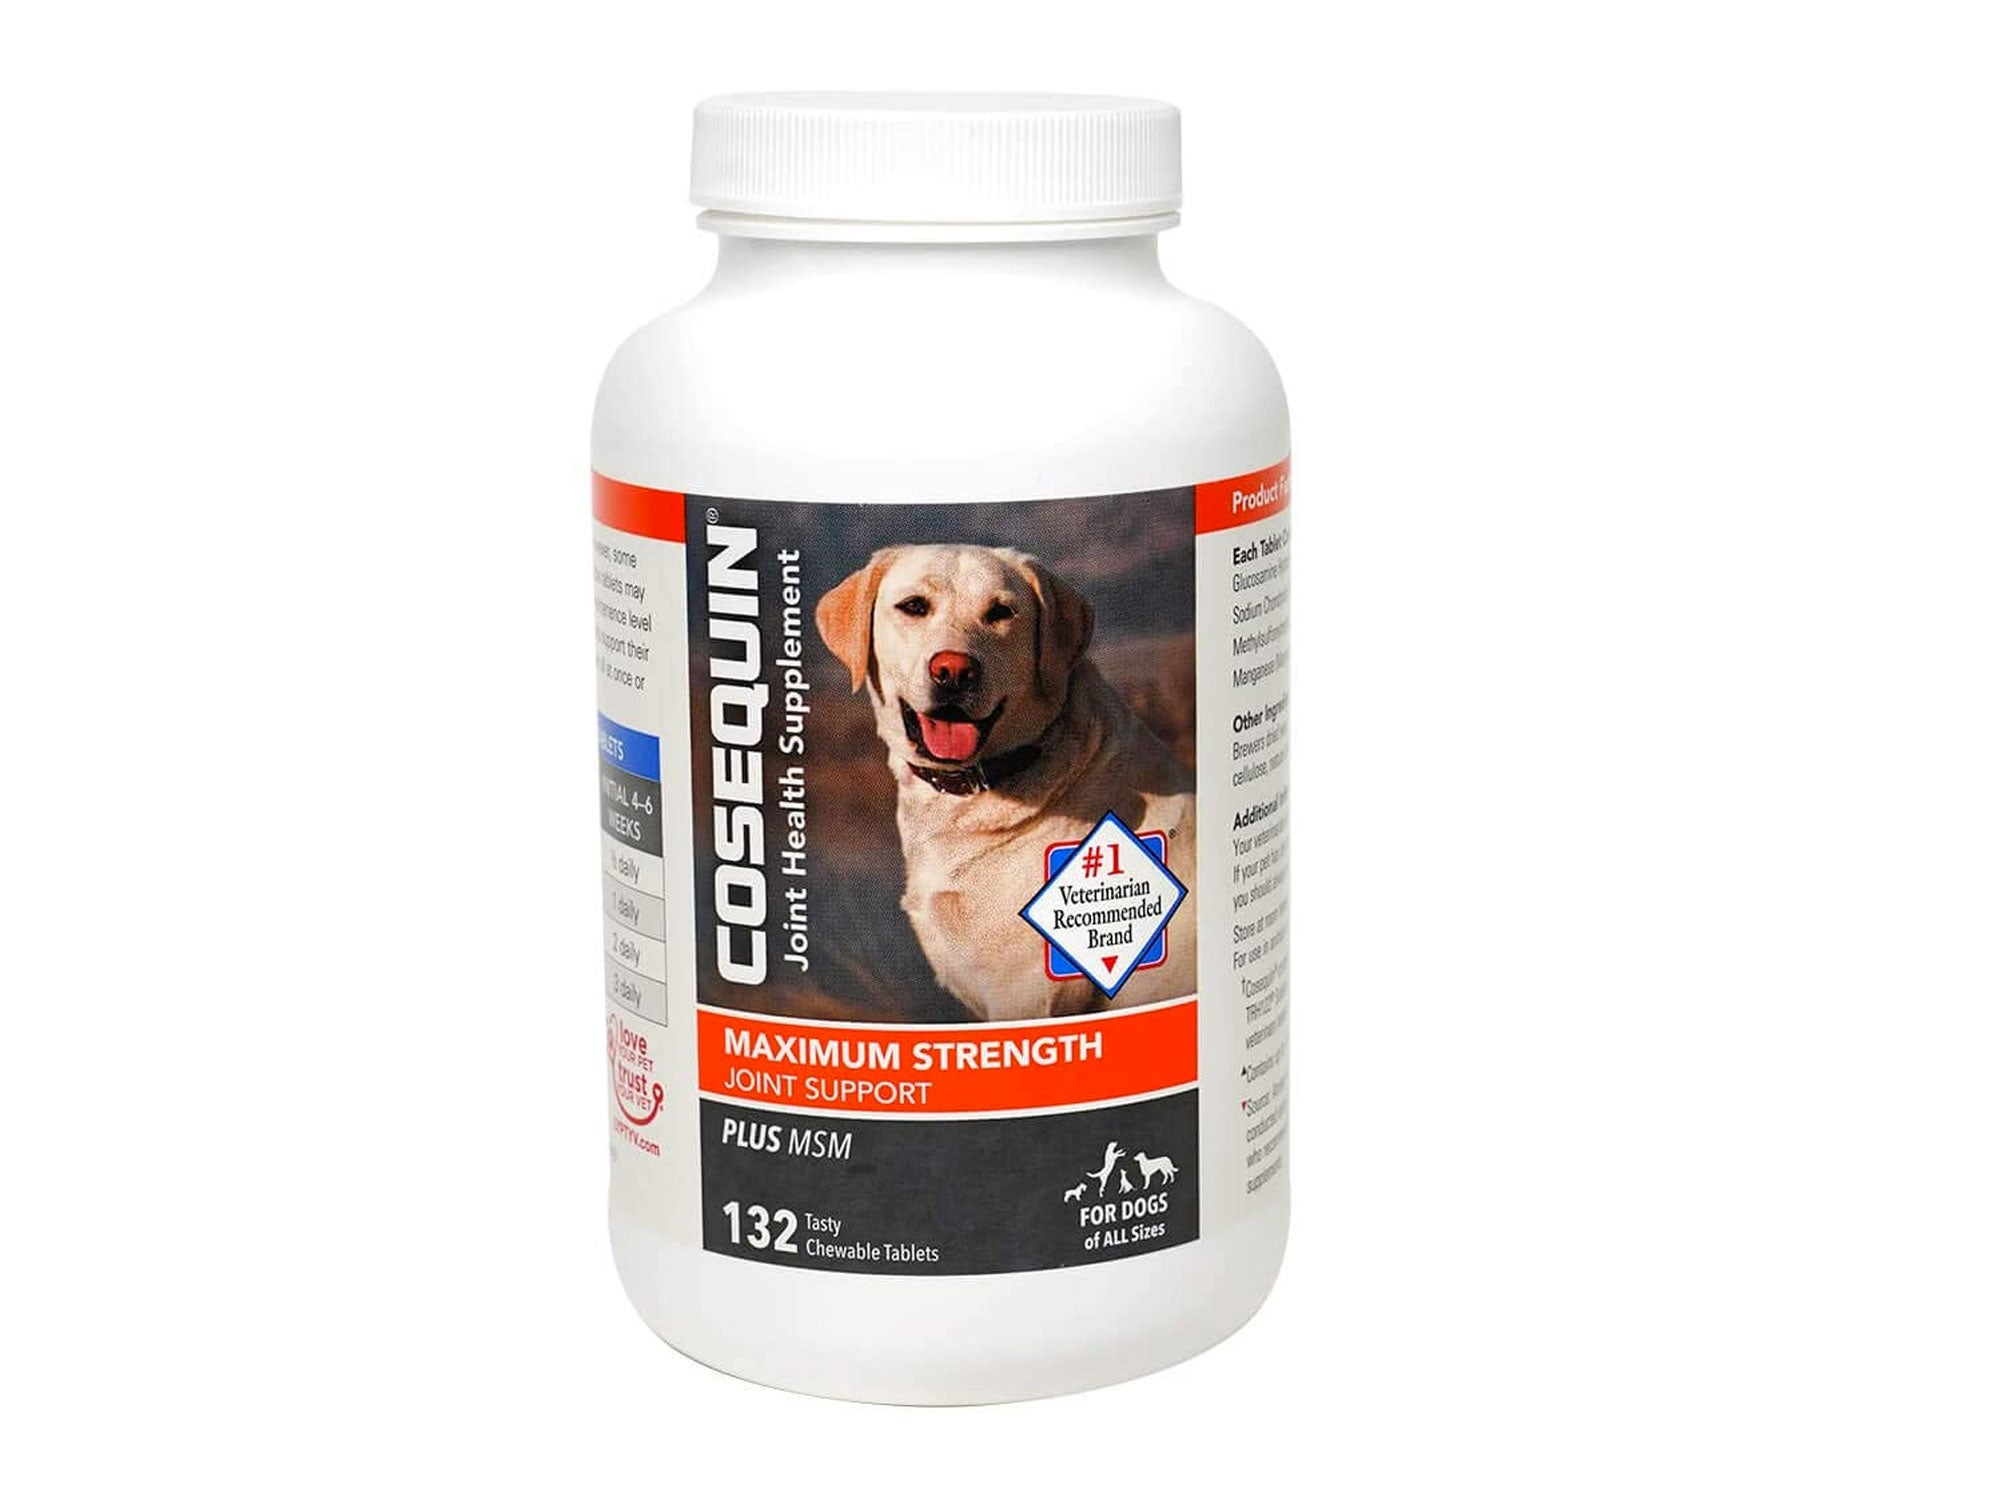 Cosequin Maximum Strength Joint Supplement Plus MSM